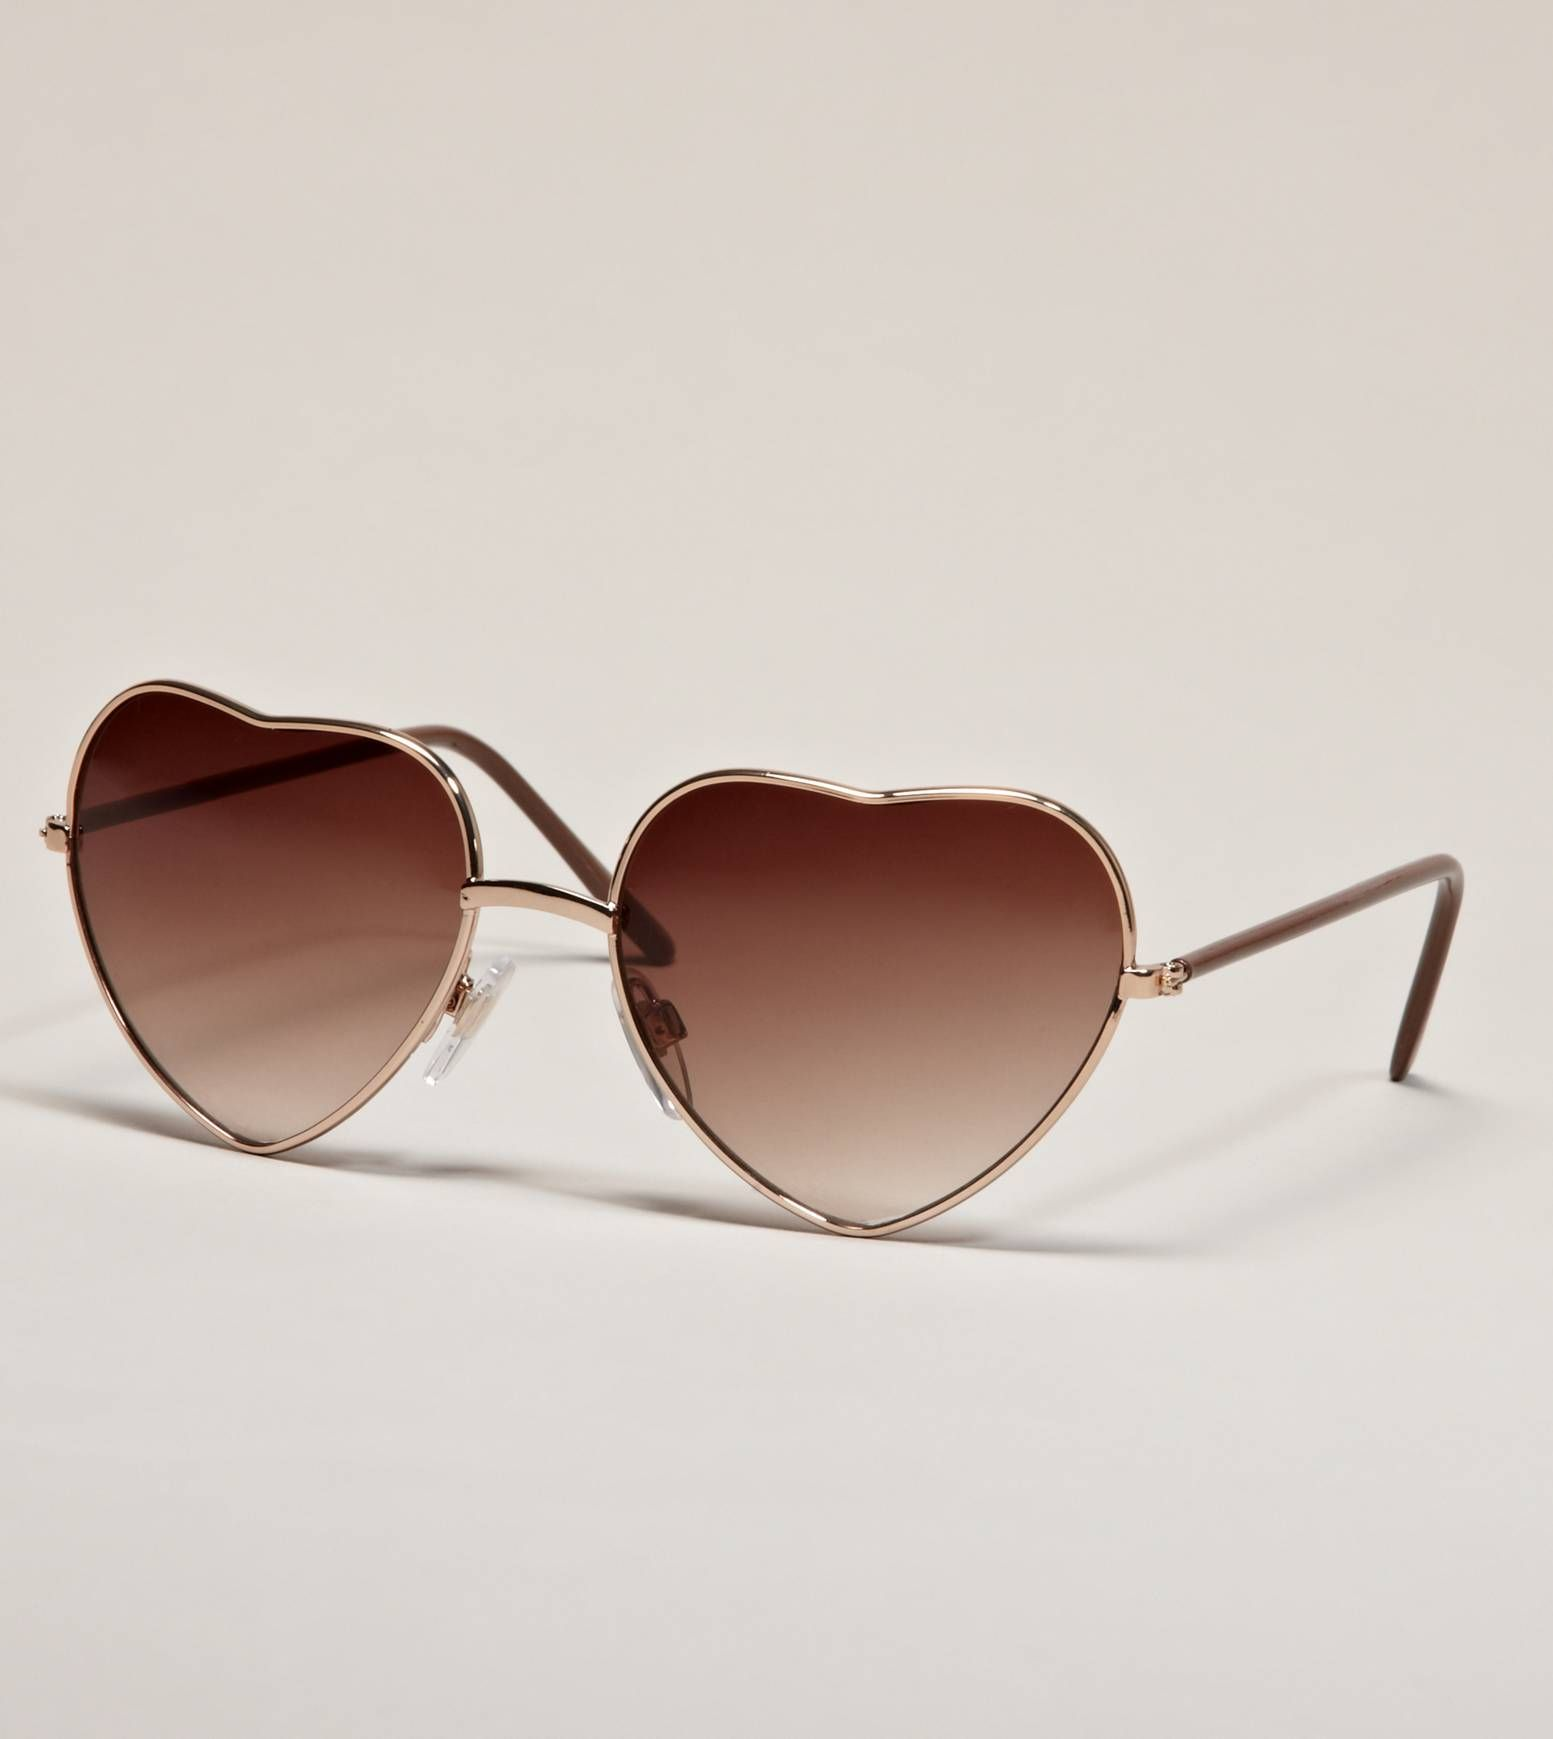 33761f33ad AE Heart Aviator Sunglasses. My first pair had the lens pop out